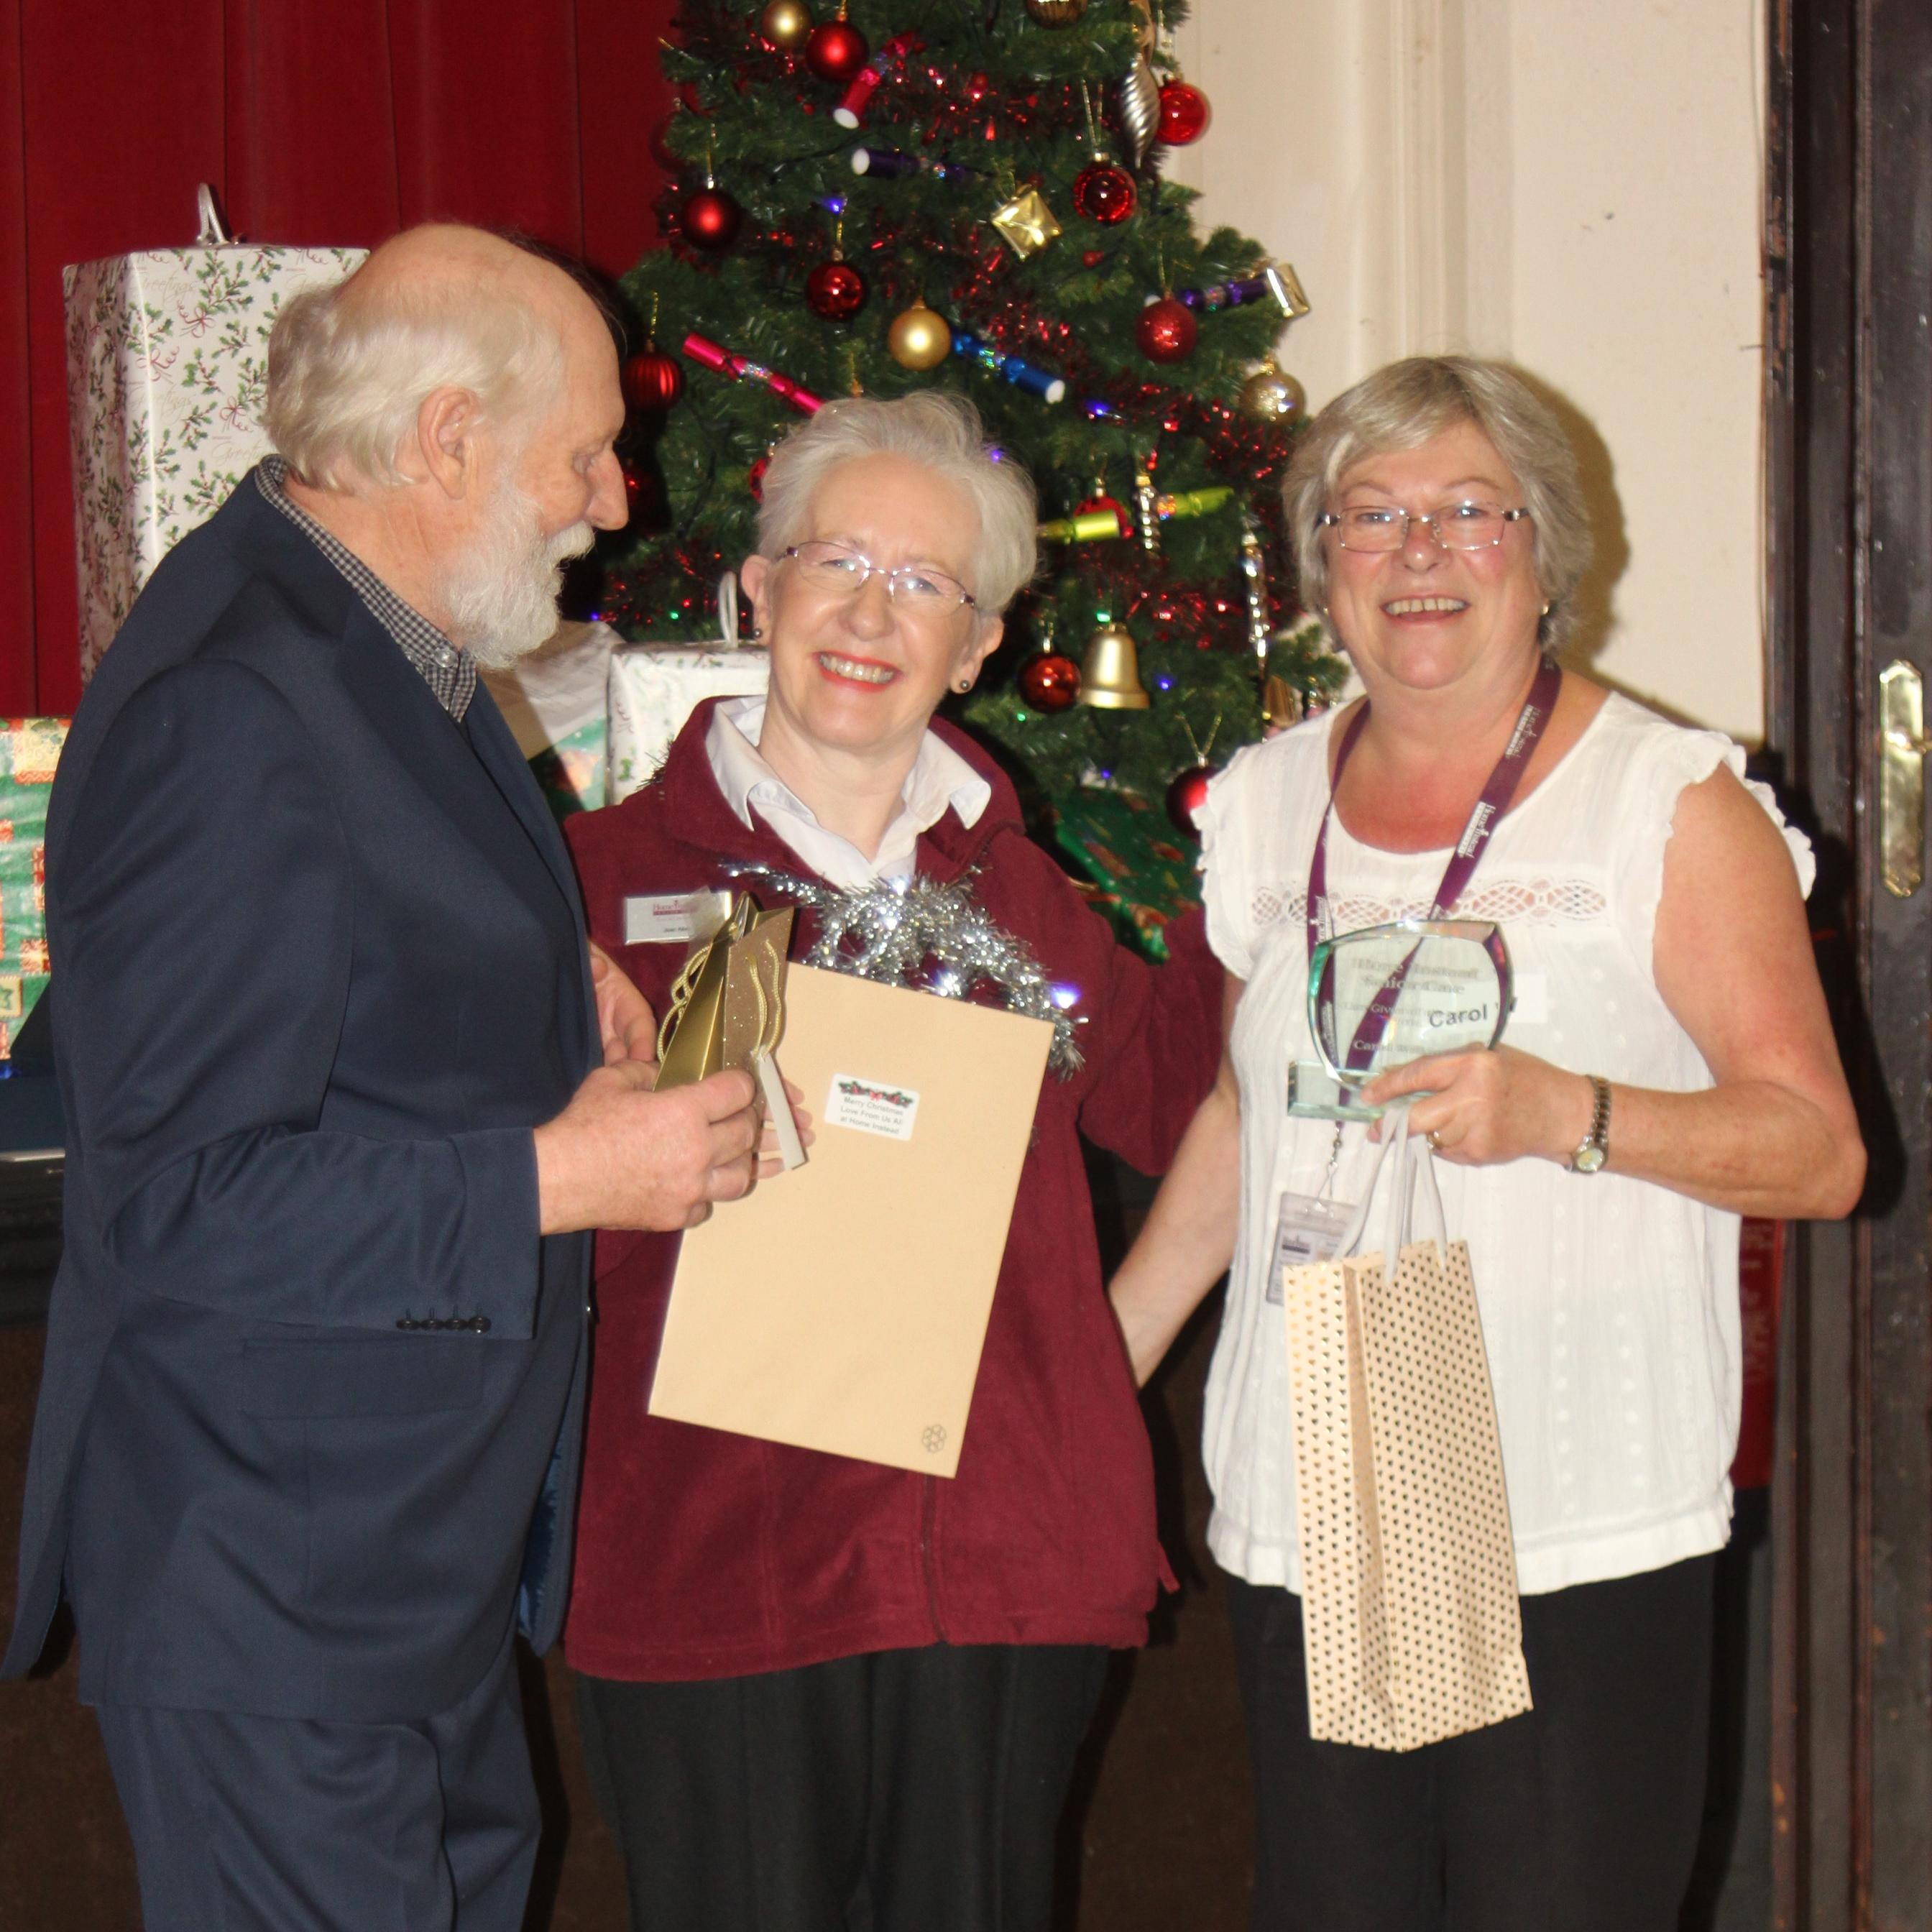 Home Instead CAREGiver of the Year 2018